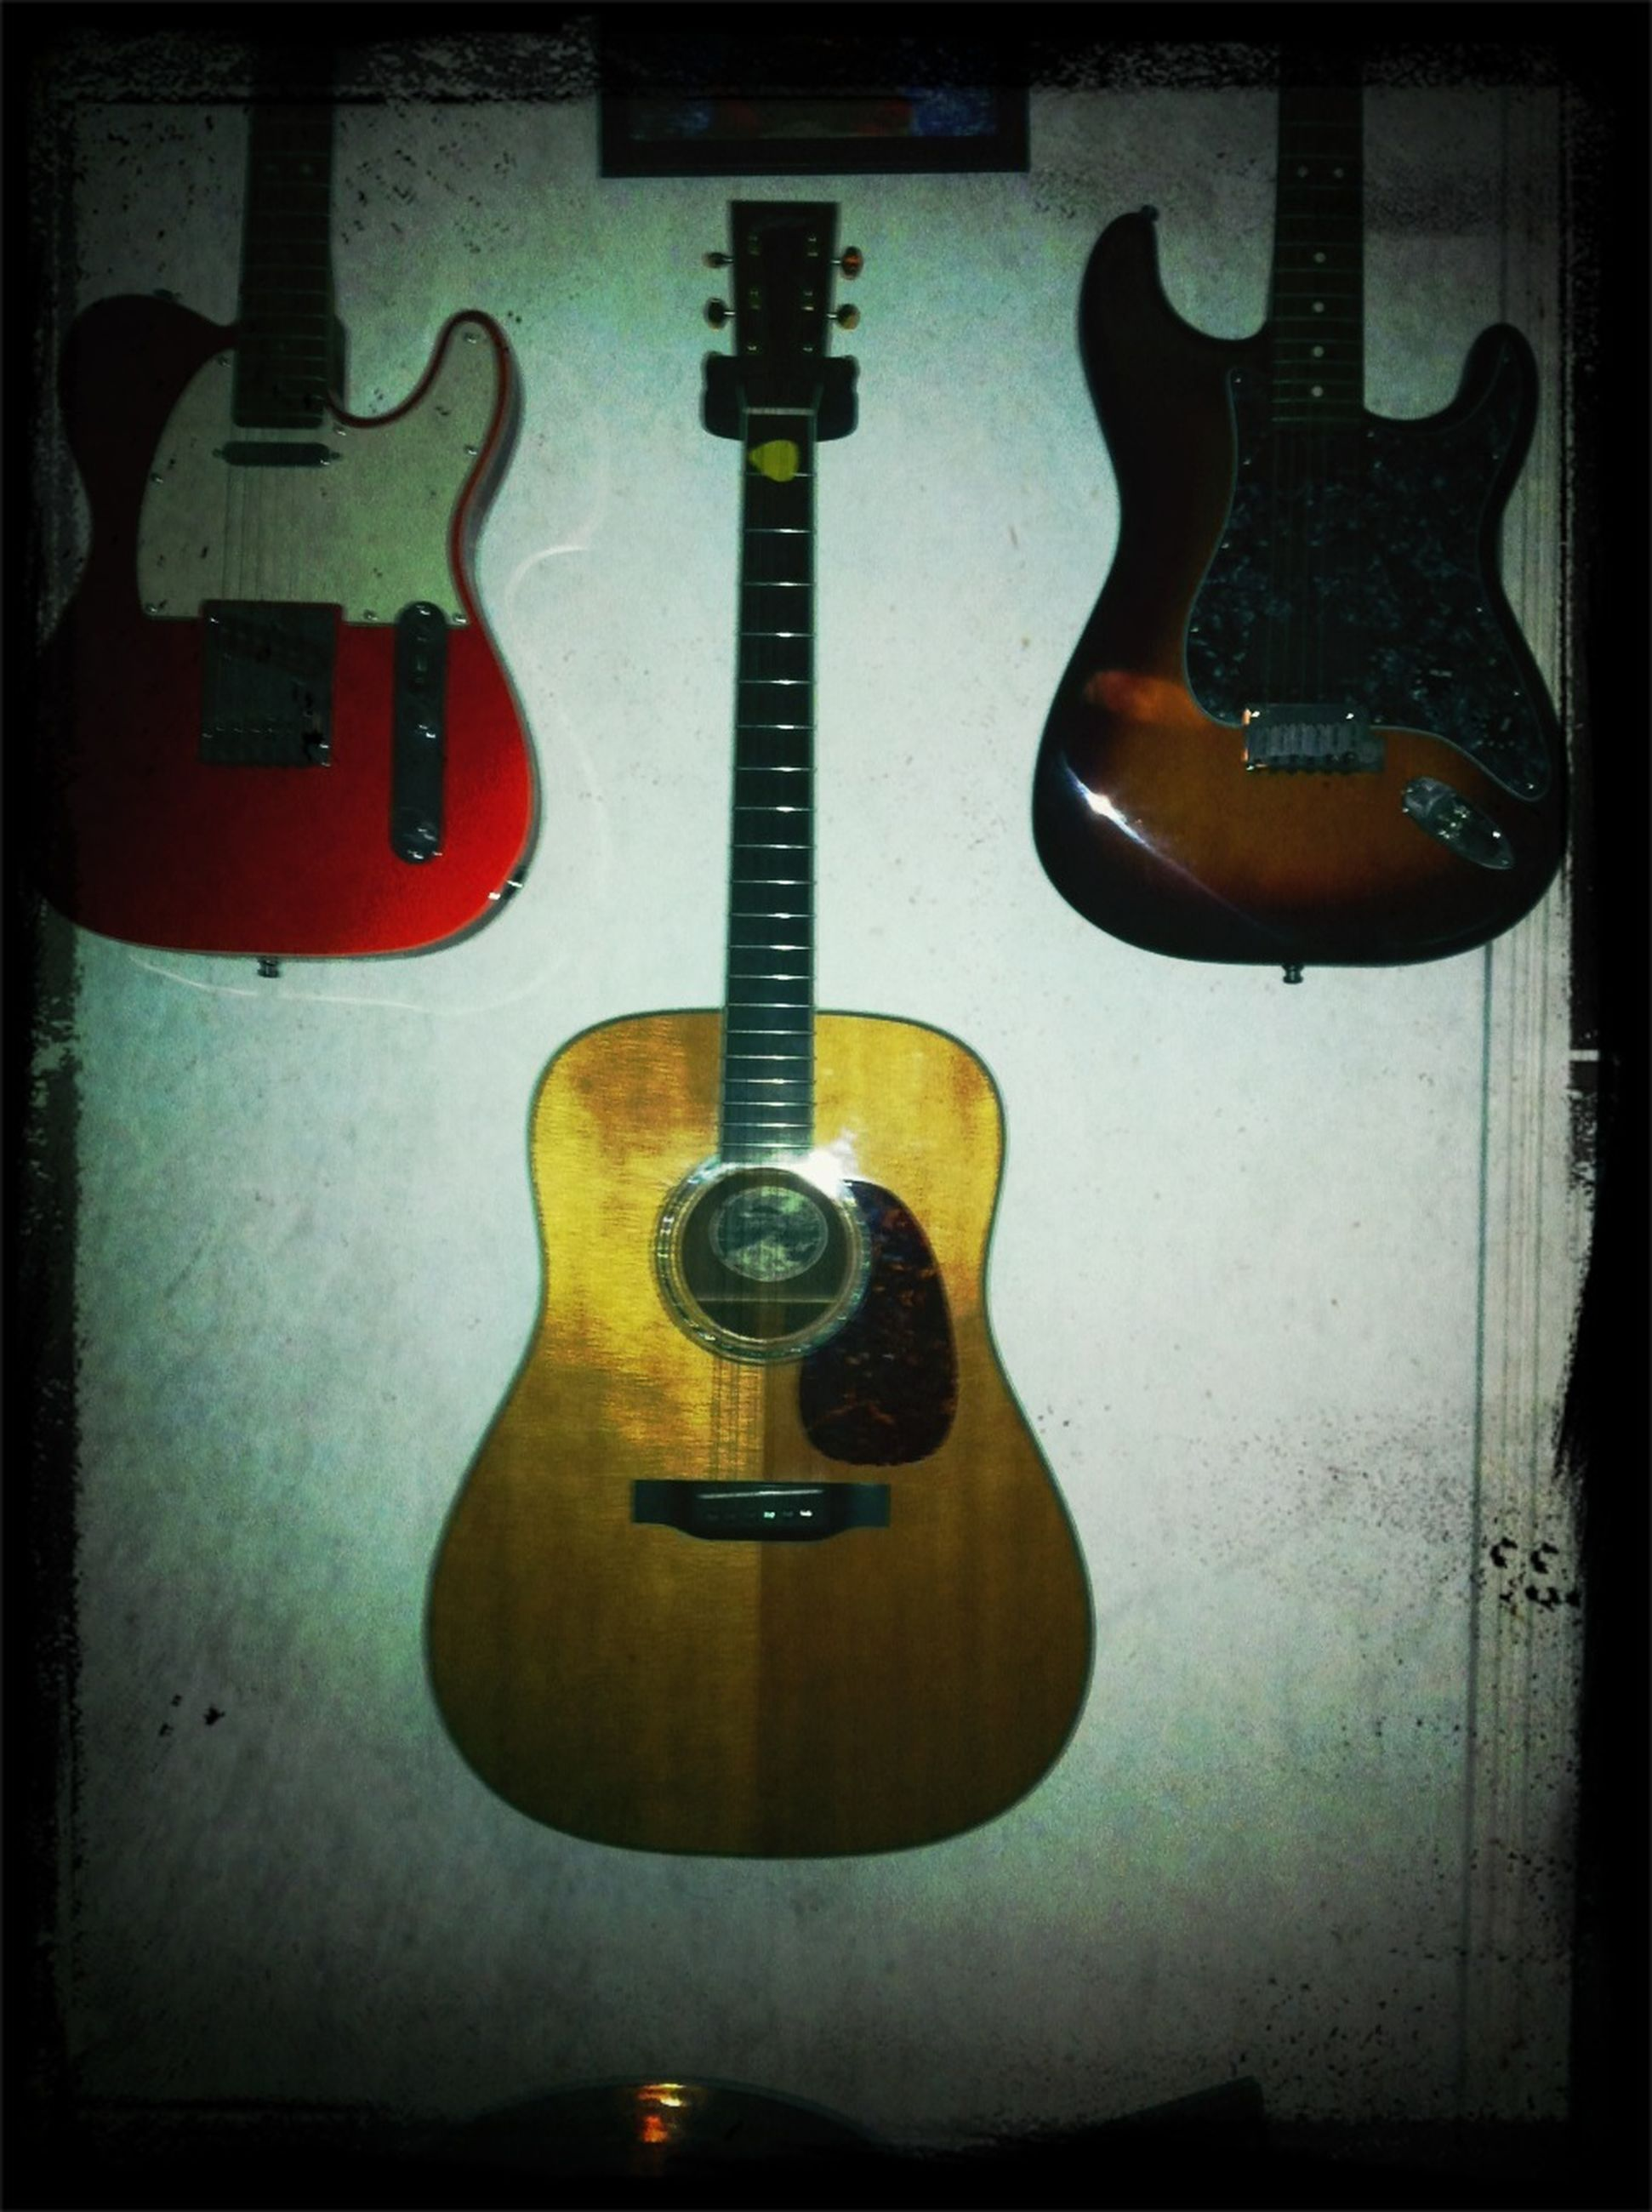 indoors, transfer print, auto post production filter, close-up, still life, metal, music, wall - building feature, musical instrument, table, single object, arts culture and entertainment, technology, no people, old-fashioned, electricity, wood - material, guitar, hanging, home interior